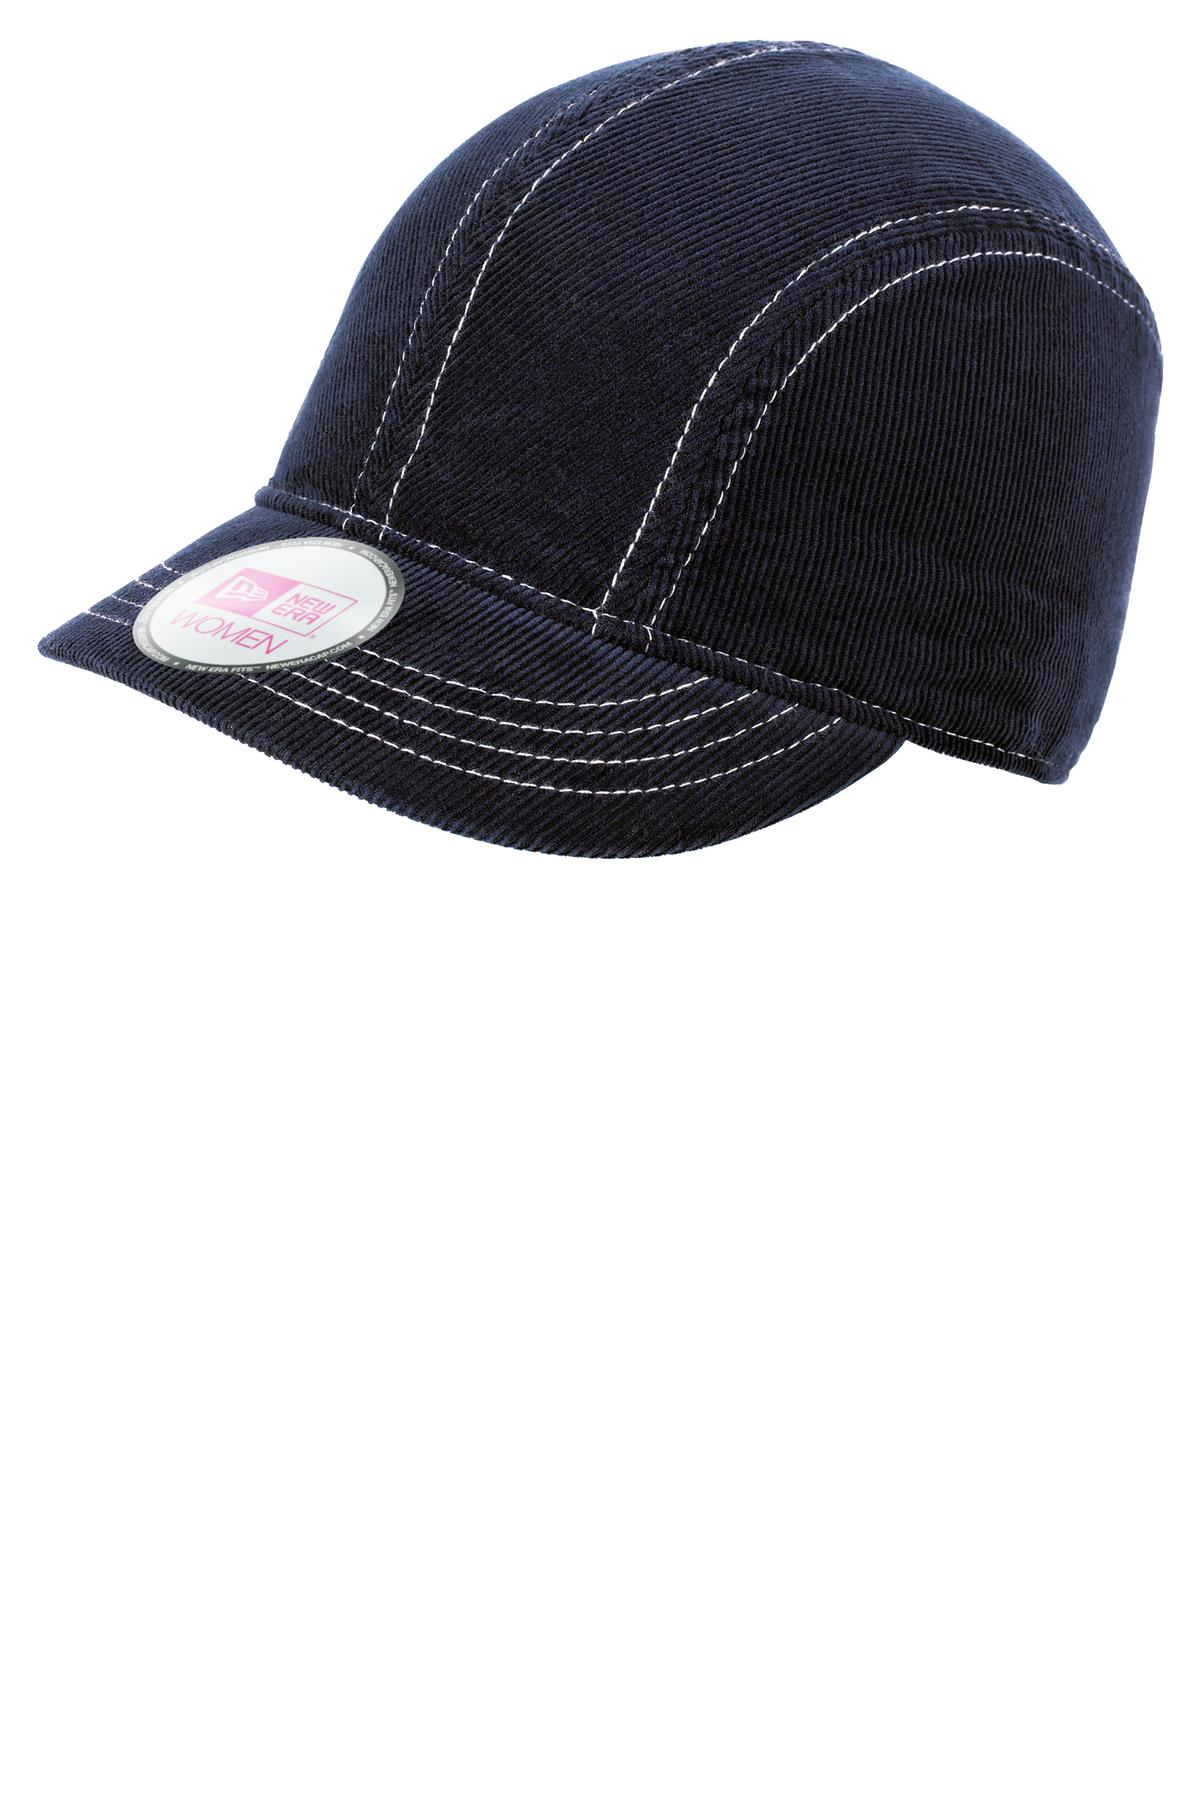 CLOSEOUT New Era  NE500 - Women's Corduroy Short Bill Cap